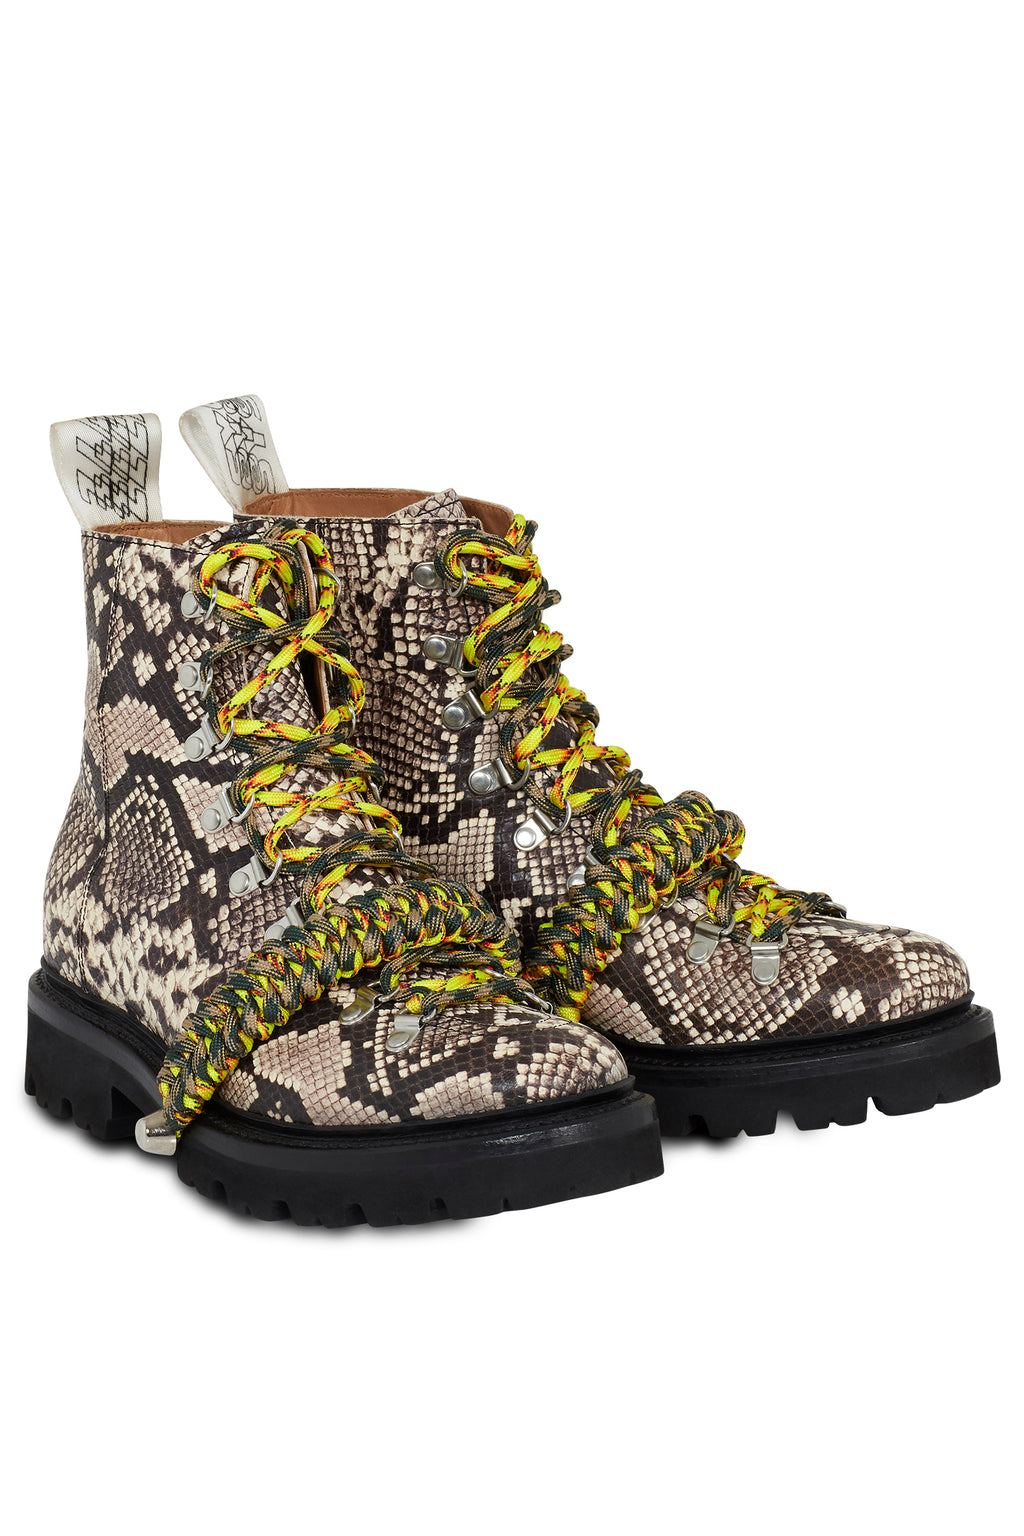 House of Holland x Grenson Hiking Boot (Brown Snake Skin) by House of Holland